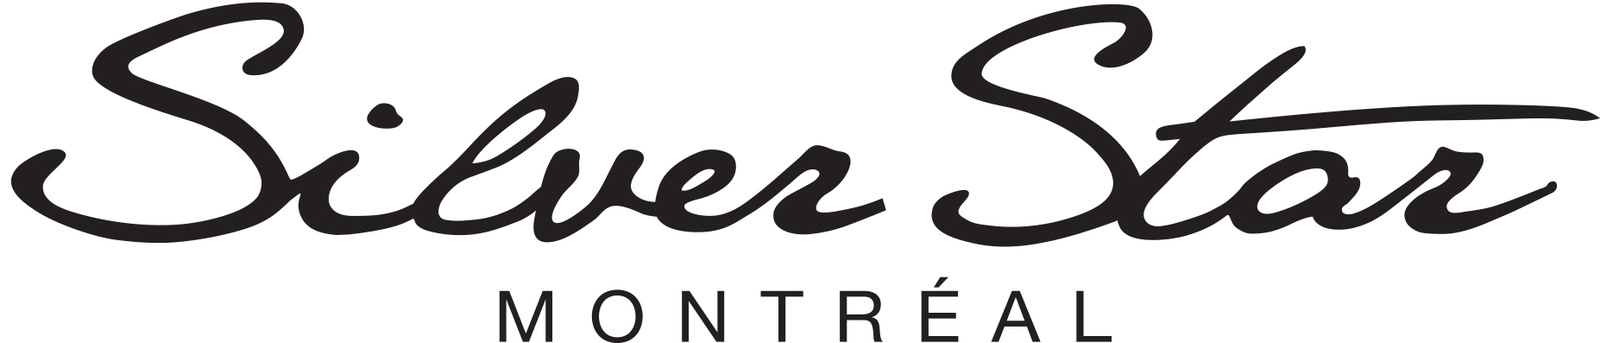 Silver Star Mercedes Benz Montreal   Montreal, QC: Read Consumer Reviews,  Browse Used And New Cars For Sale